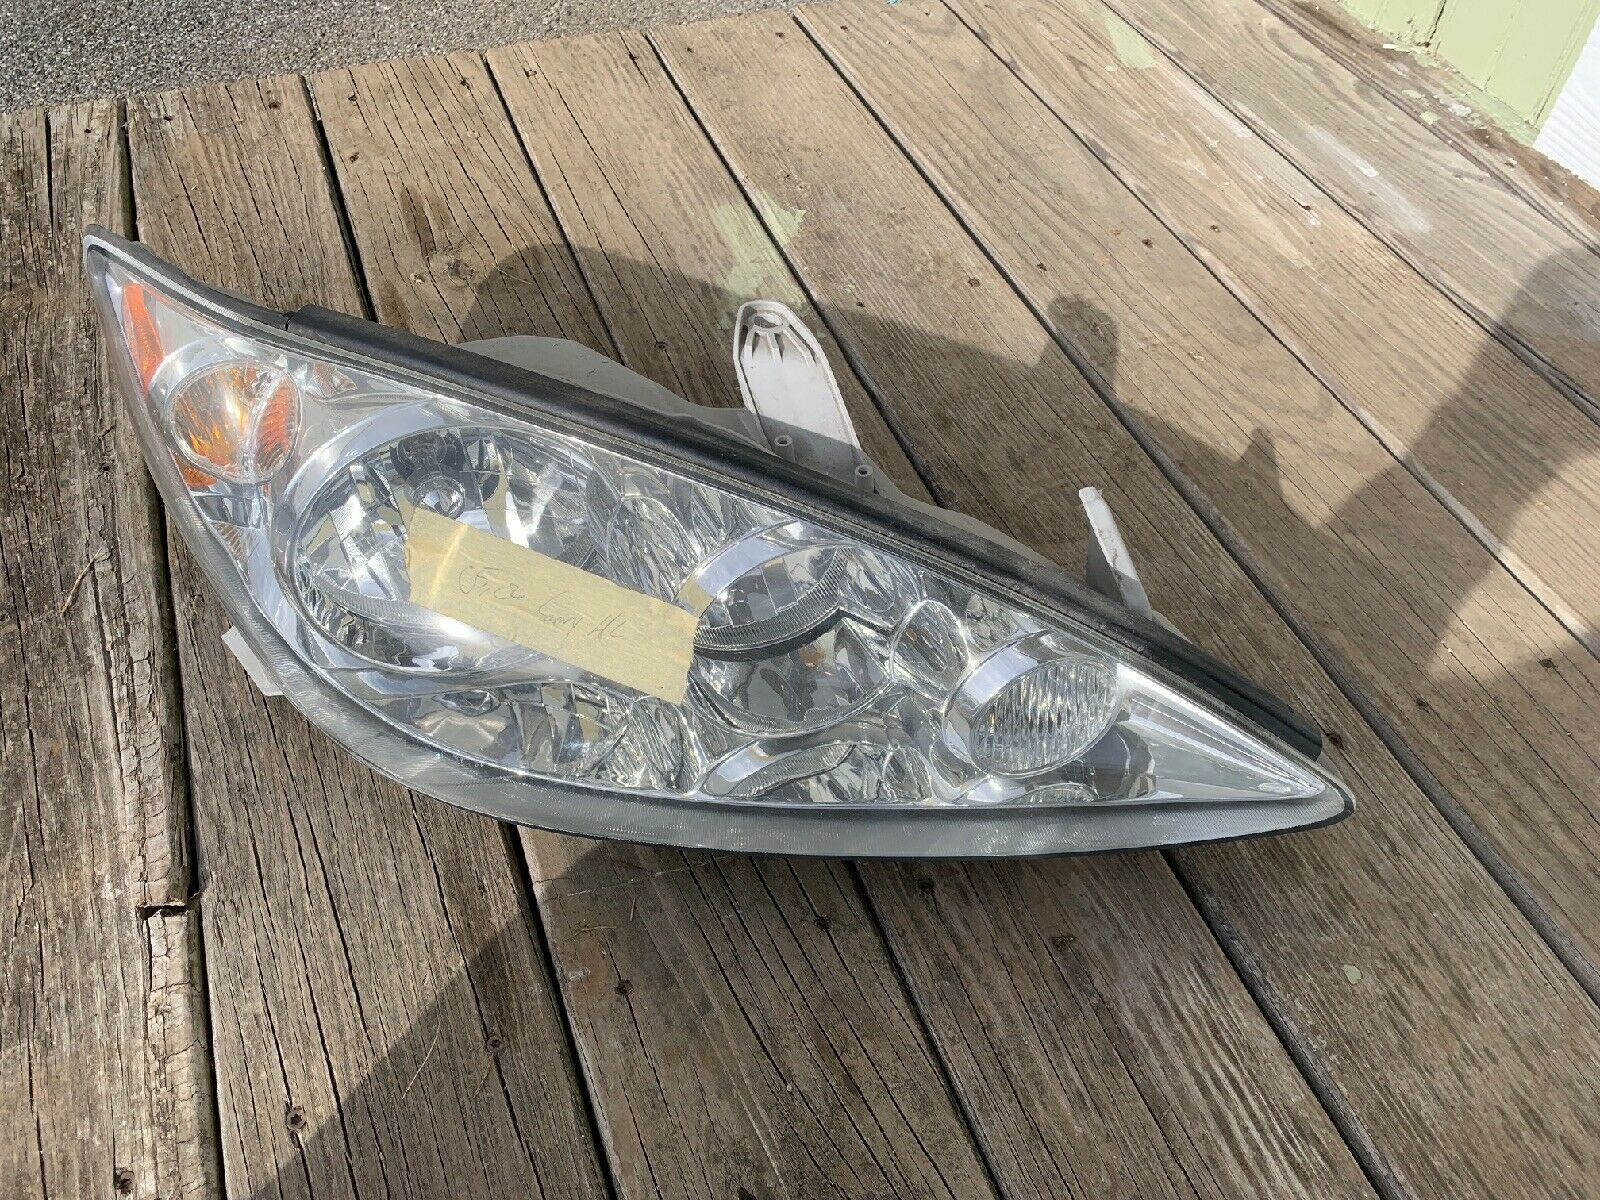 CLEAN USED CAMRY 2005 HEADLIGHT SET